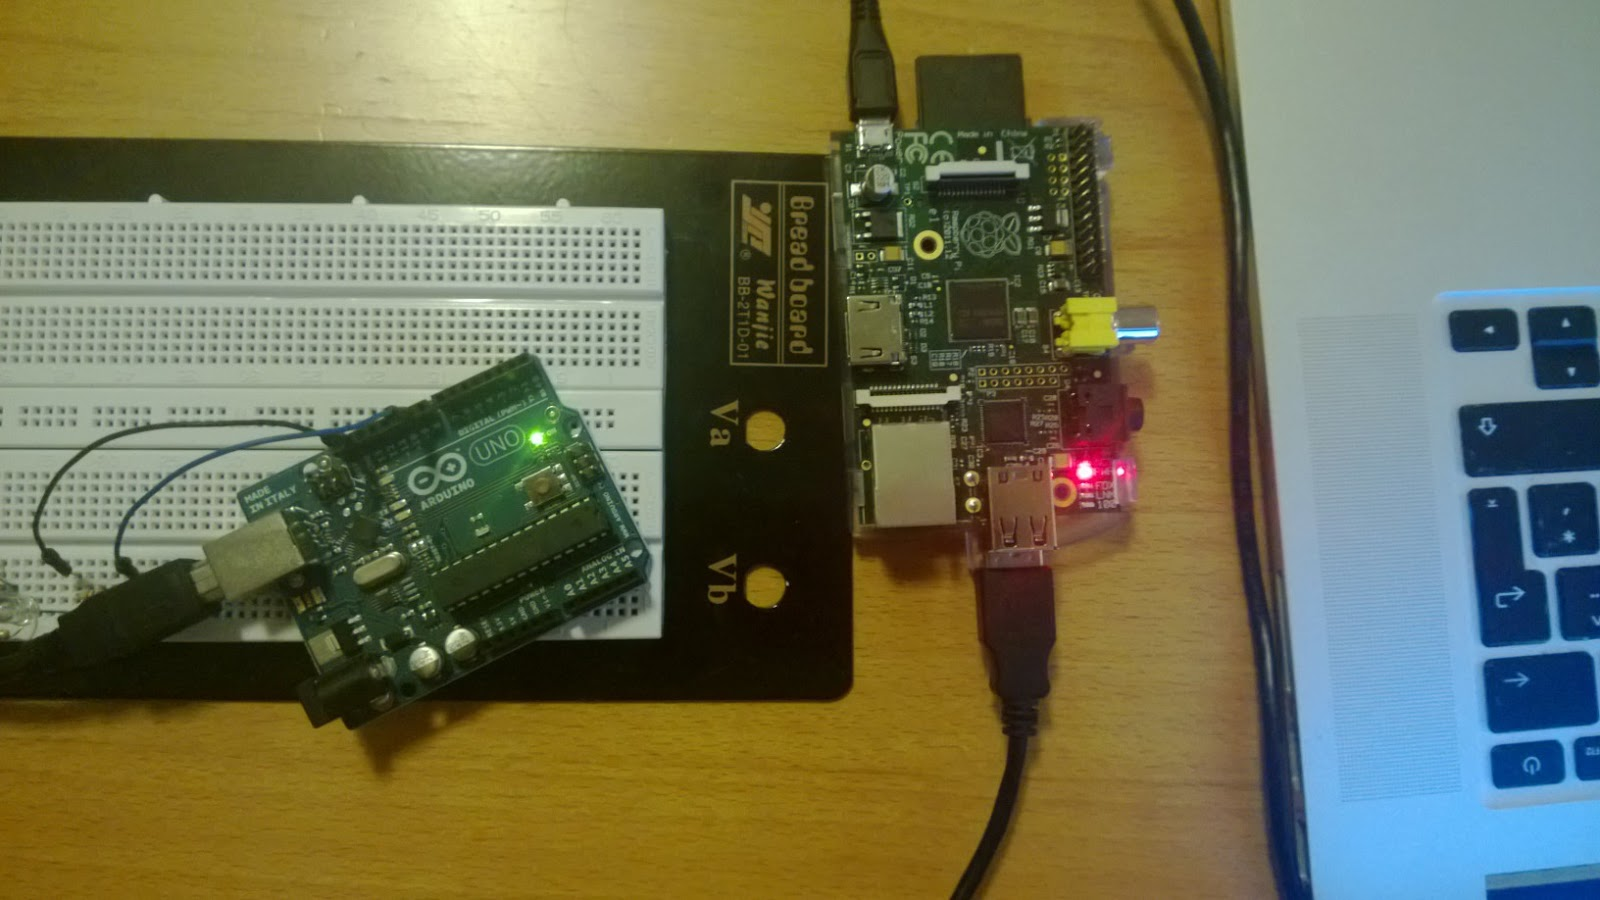 Arduino stuff: Exposing Arduino pins to Raspberry Pi with USB connection